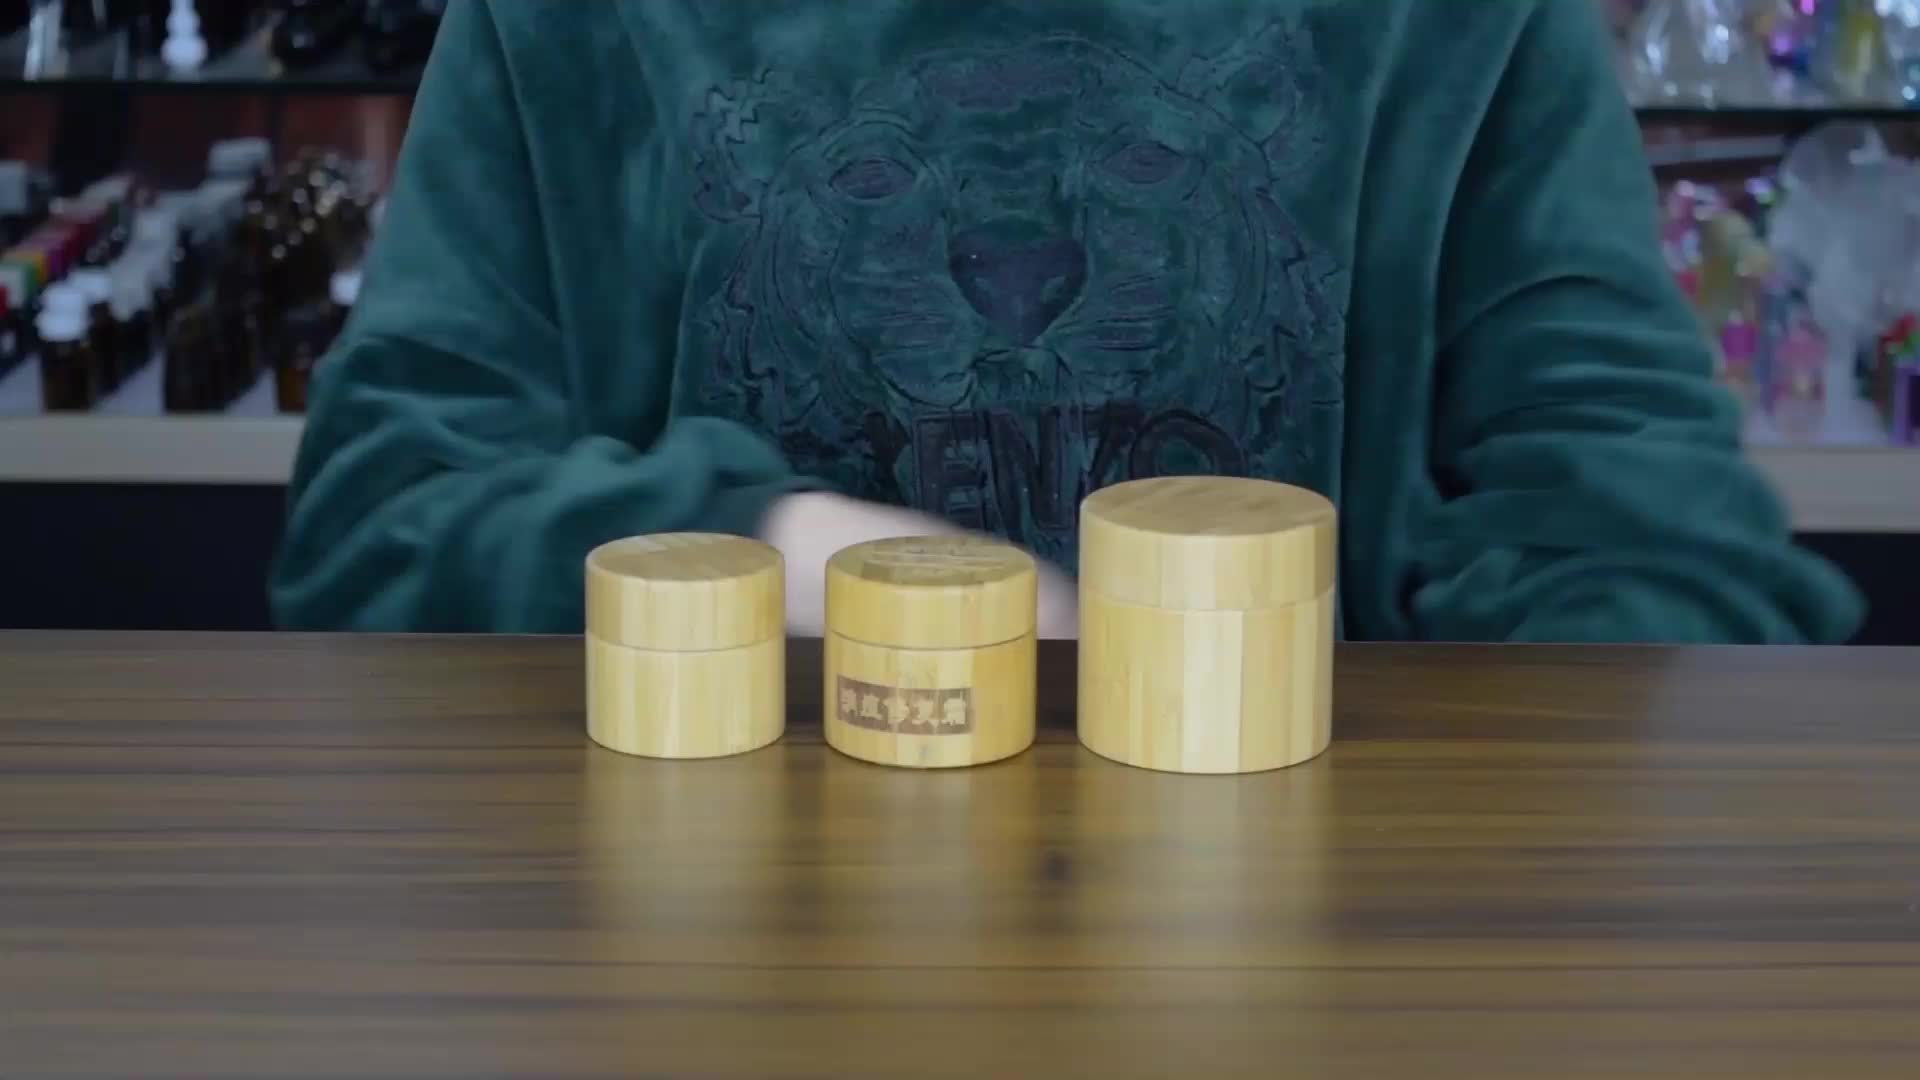 cosmetic packaging 5g 30g 50g 100g 200g logo engraving shea butter bamboo jar/plastic jar with bamboo lid